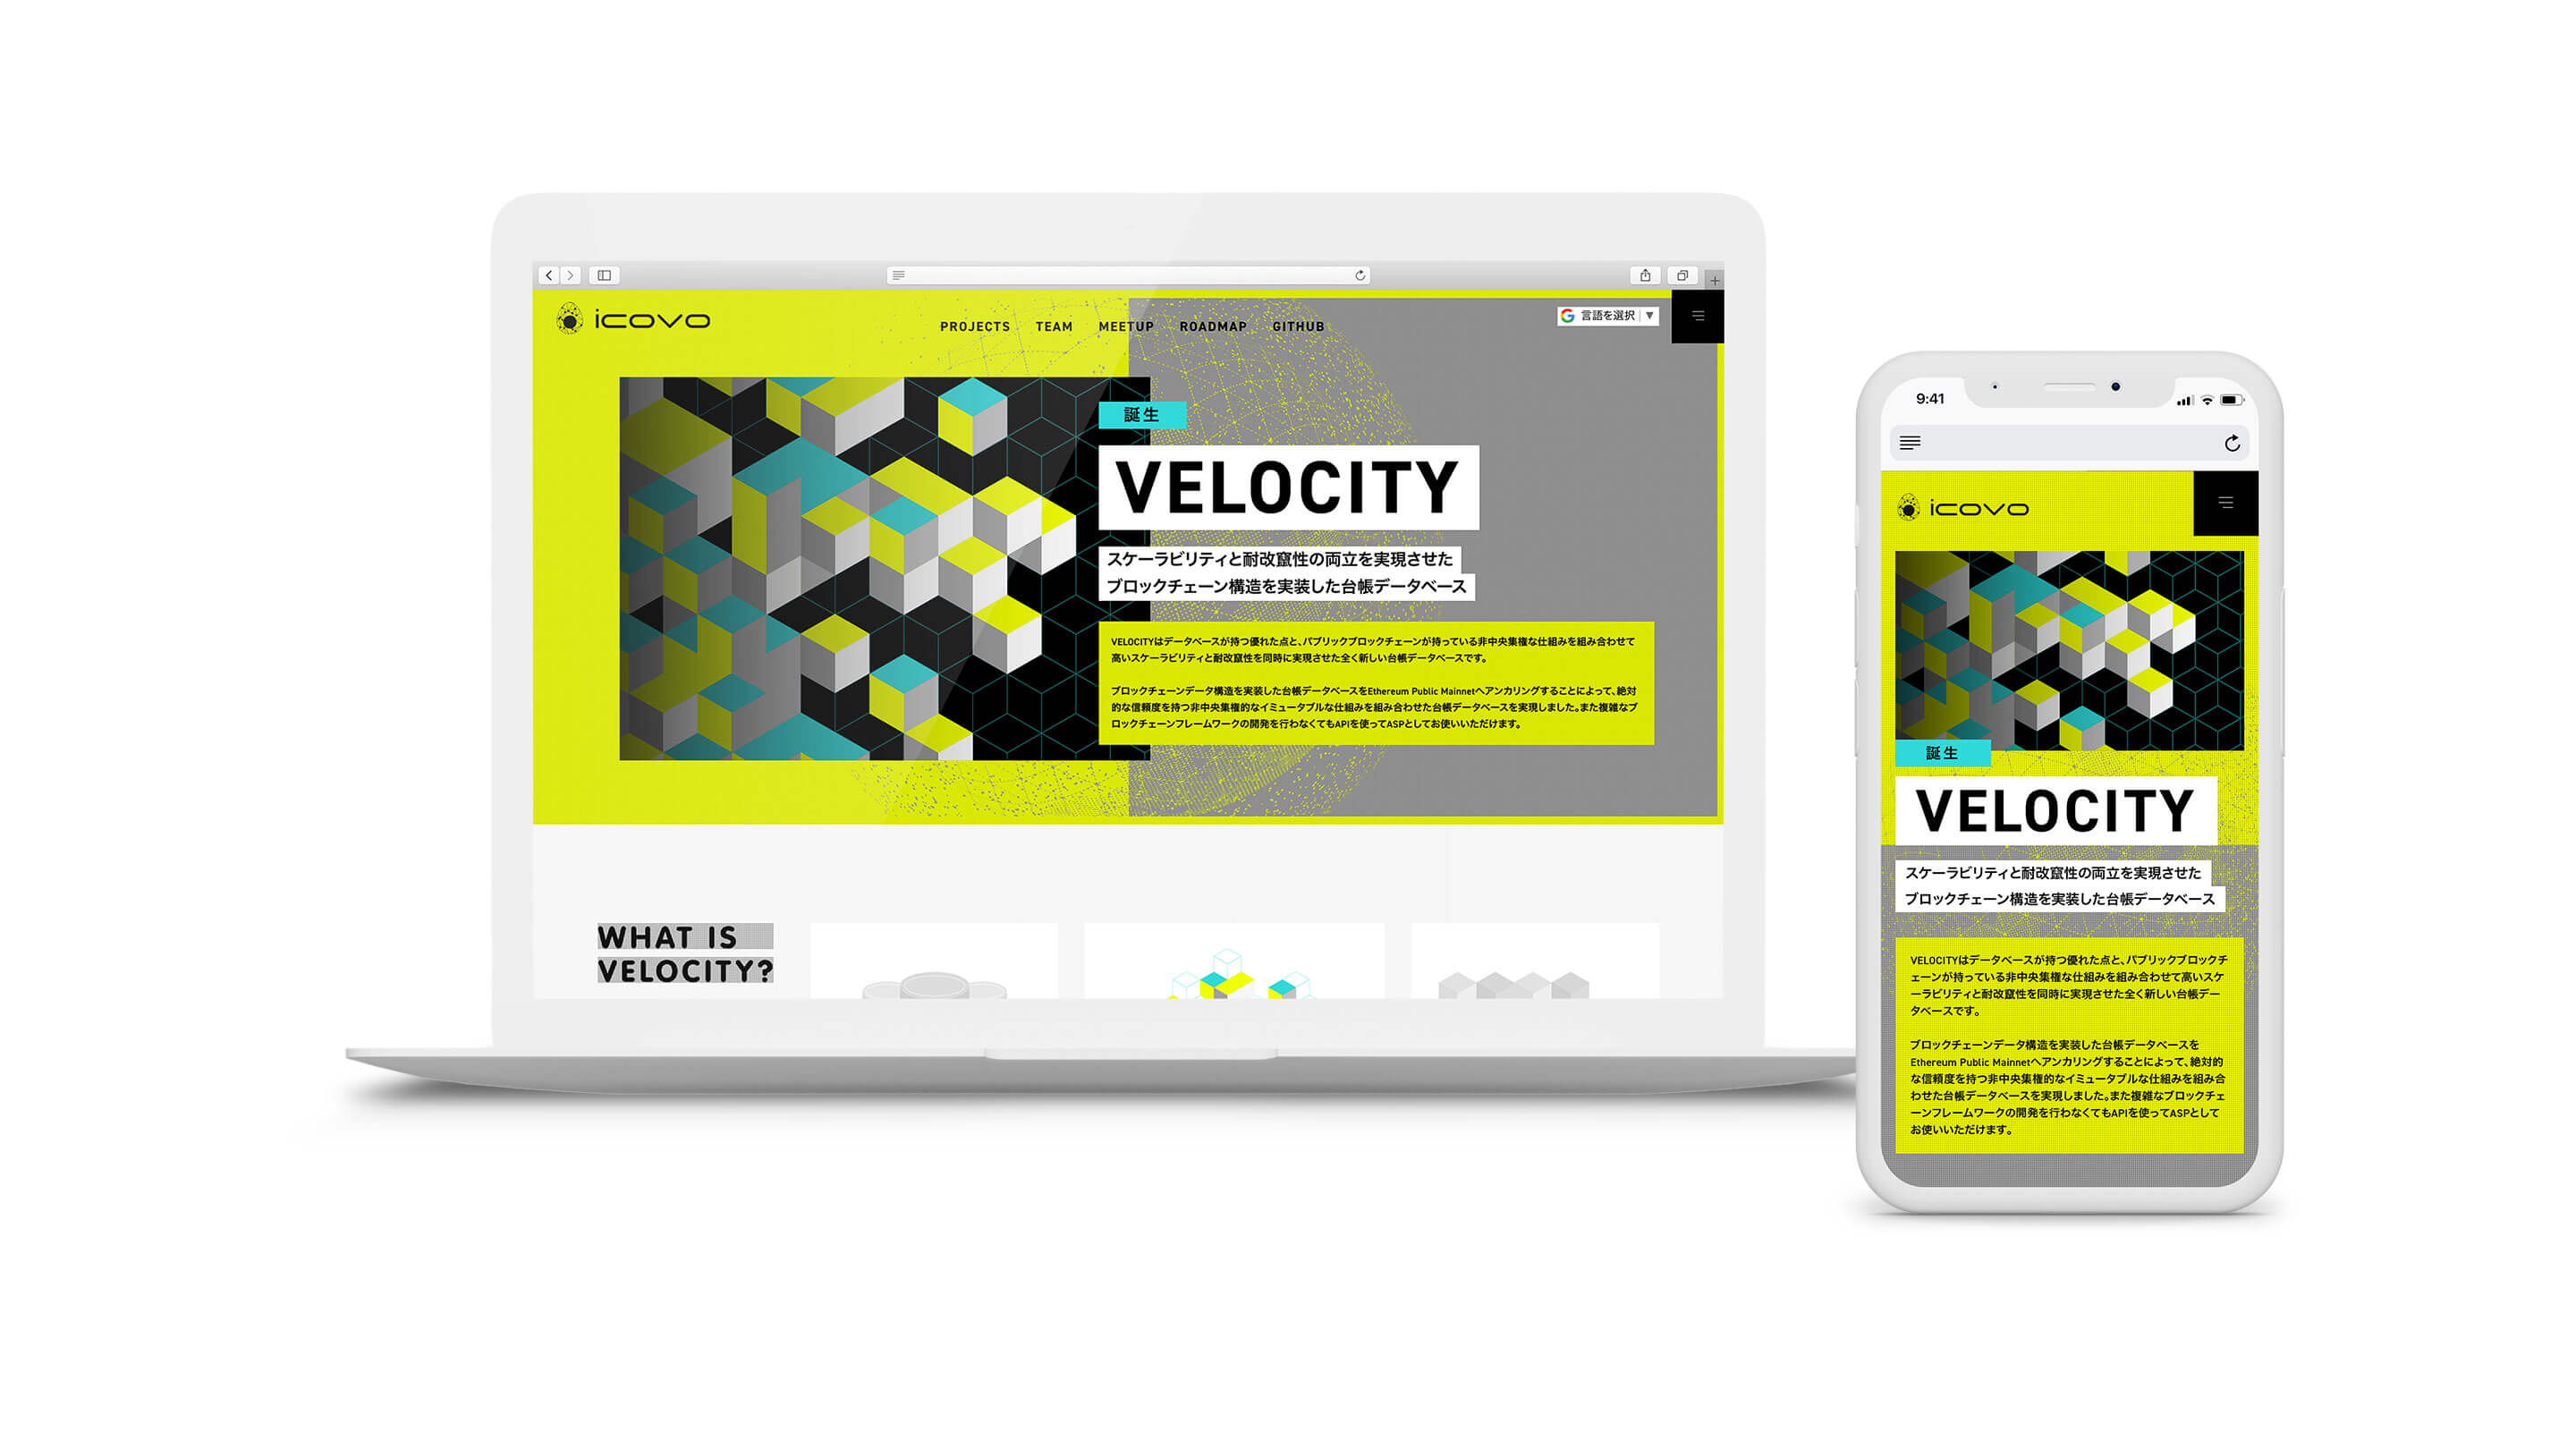 "ICOVO | ランディングページ| VELOCITY | ウェブデザイン / Designed landing page of the website for ""VELOCITY"" by ICOVO AG"